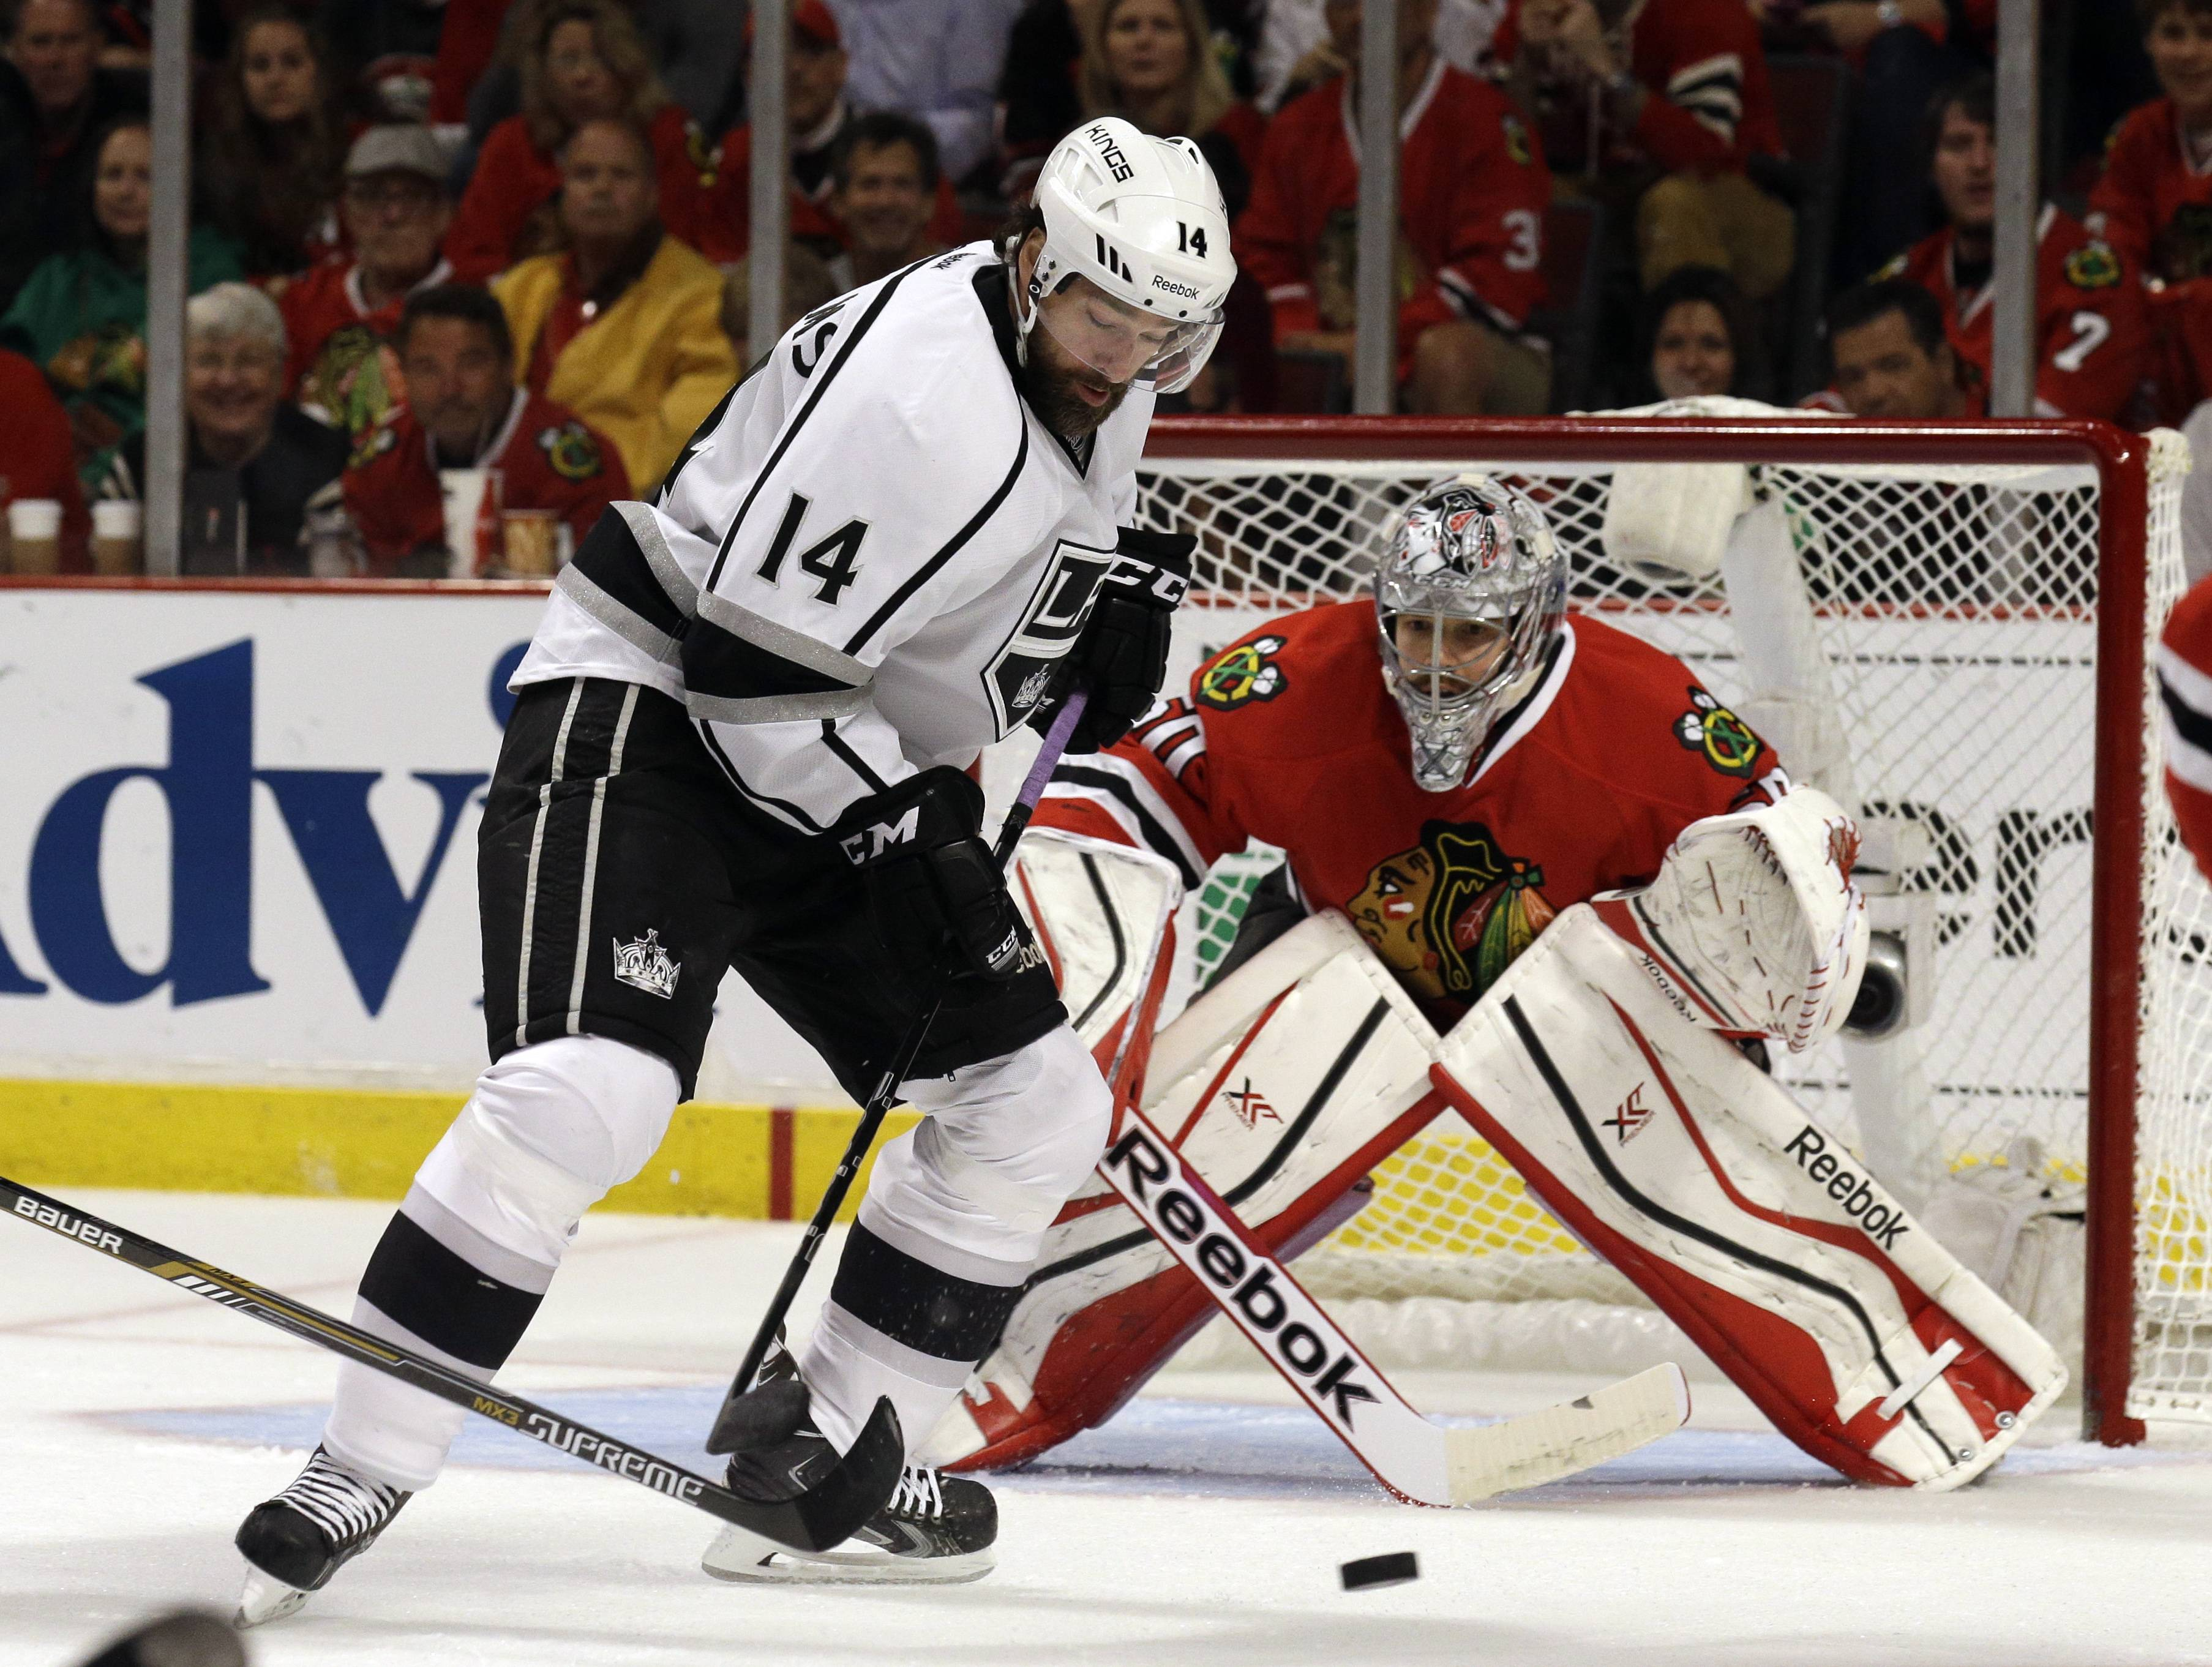 Los Angeles Kings right wing Justin Williams (14) attempts to shoot against Chicago Blackhawks goalie Corey Crawford (50) during the first period in Game 7 of the Western Conference finals in the NHL hockey Stanley Cup playoffs Sunday, June 1, 2014, in Chicago.